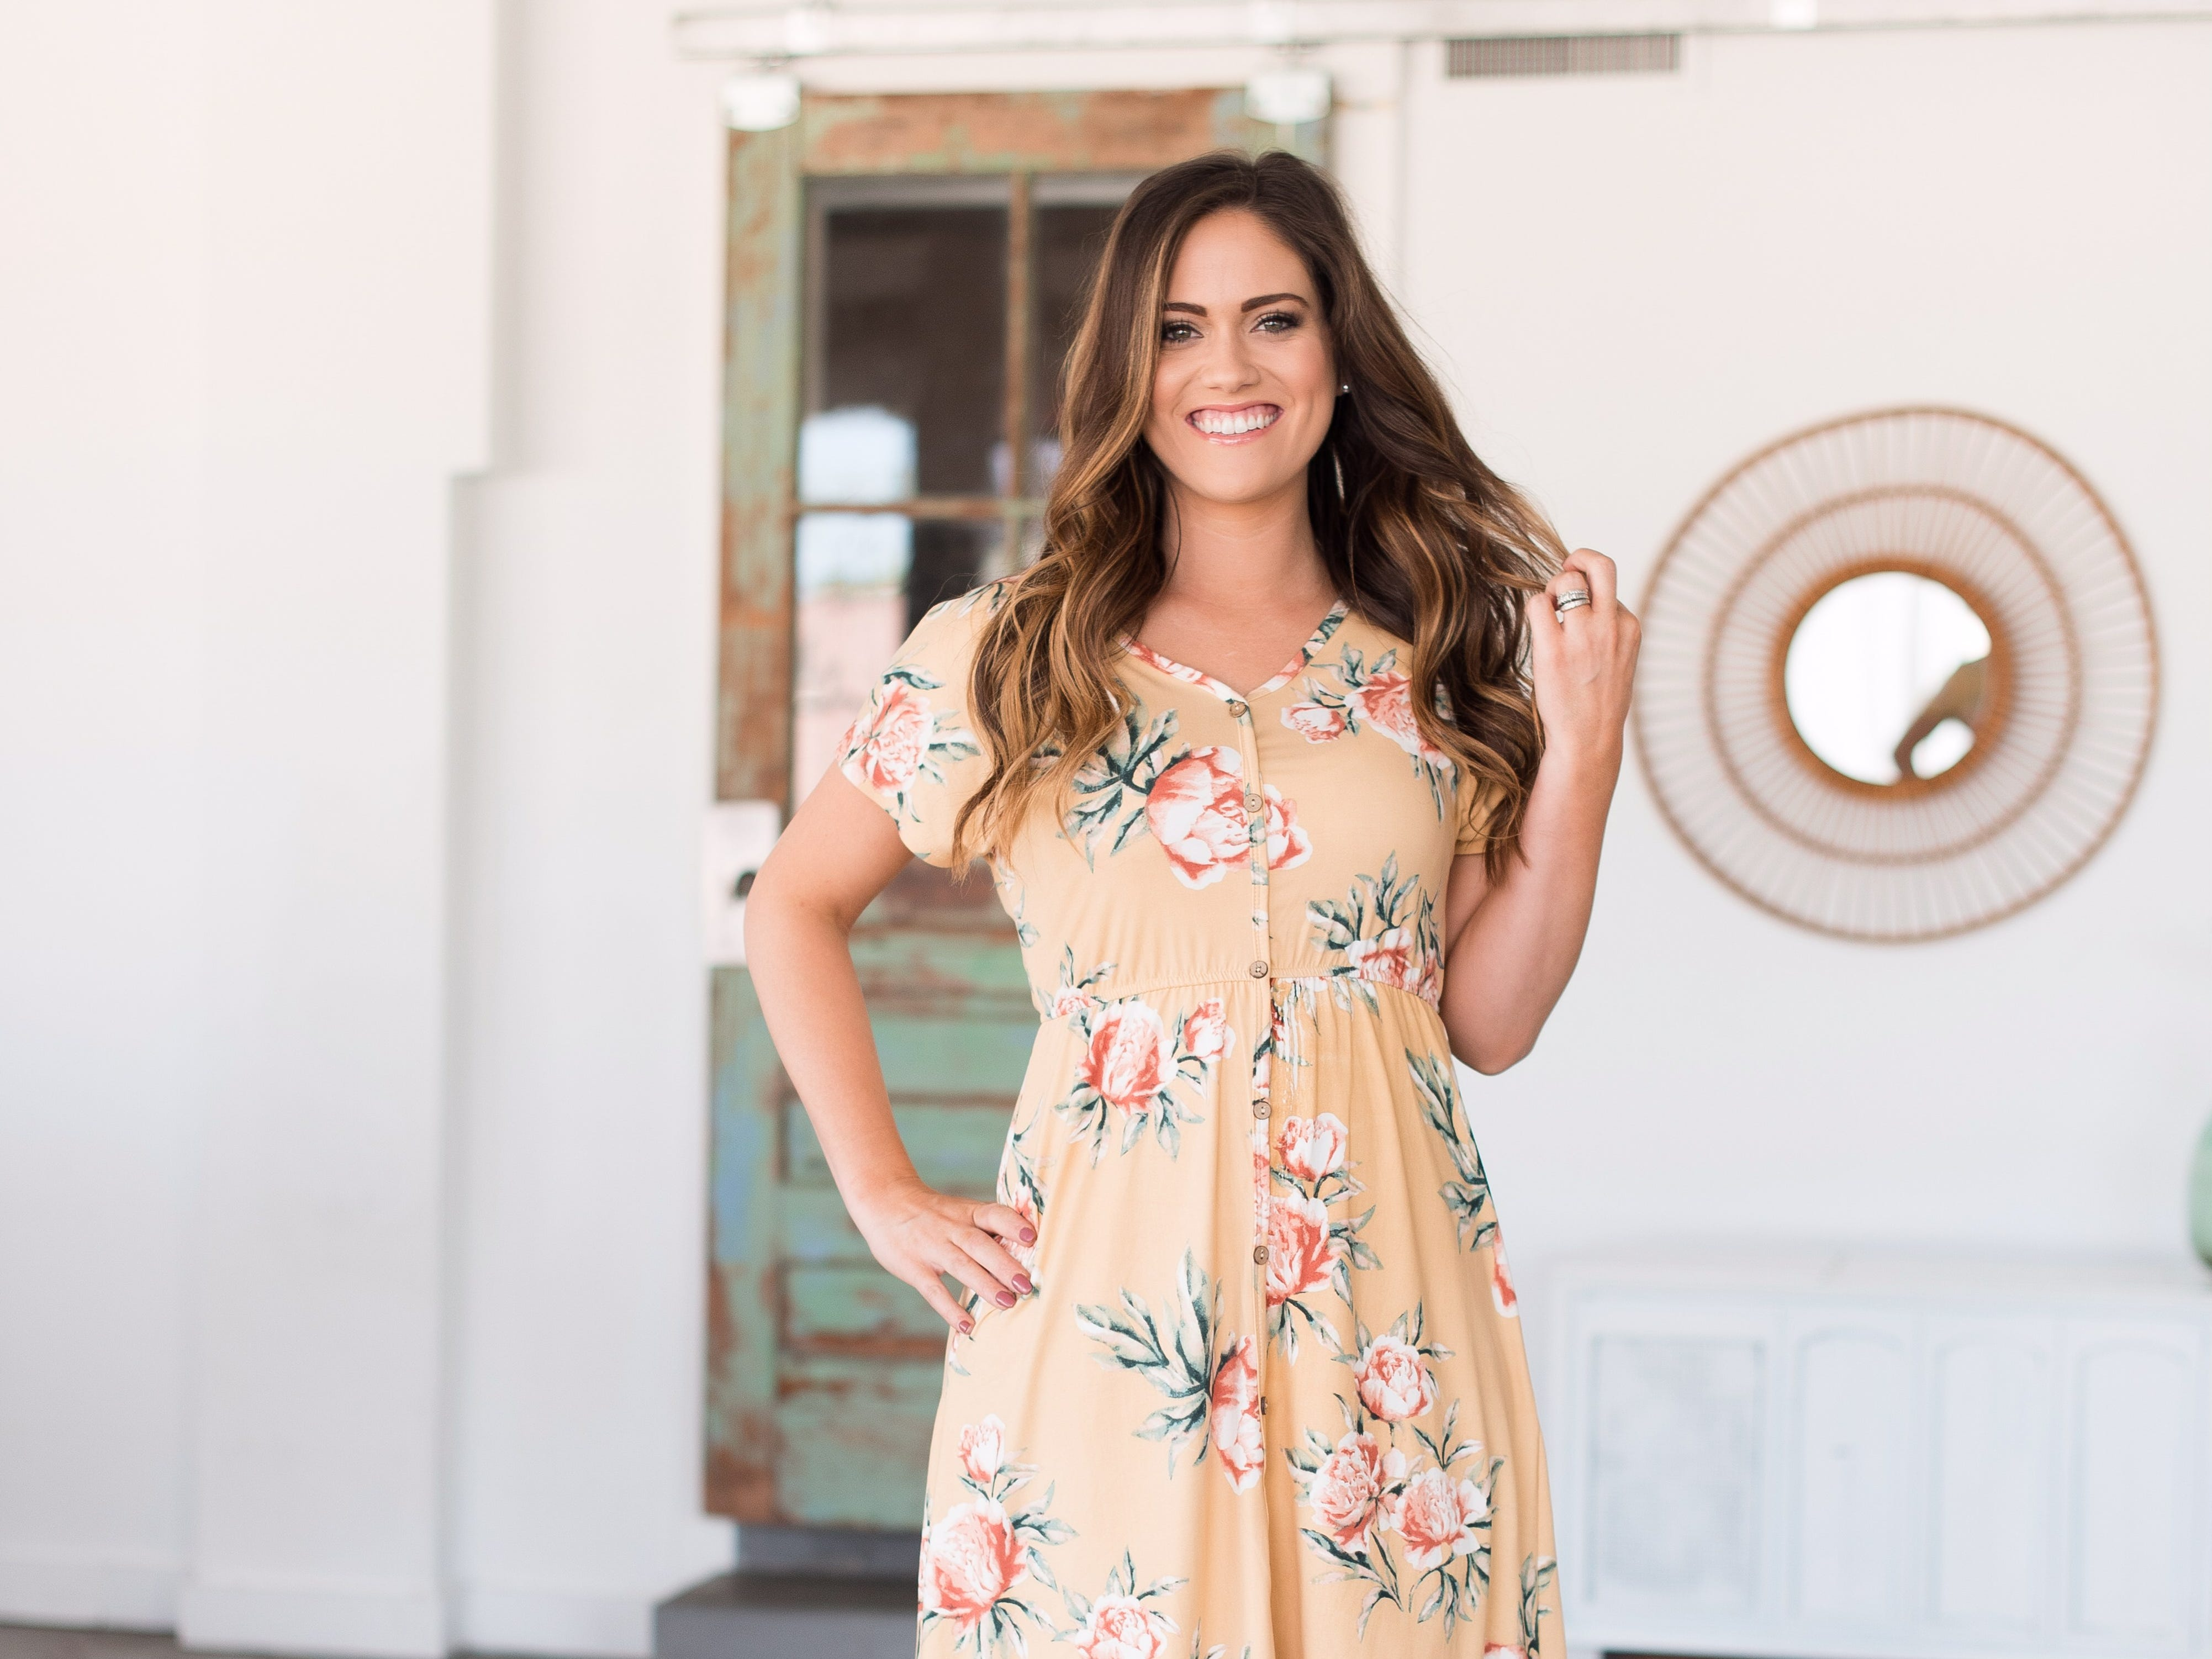 Whitney Bates models a dress from Bates Sisters' Boutique, an online clothing store that she, Erin Paine and Carlin Bates are starting together.